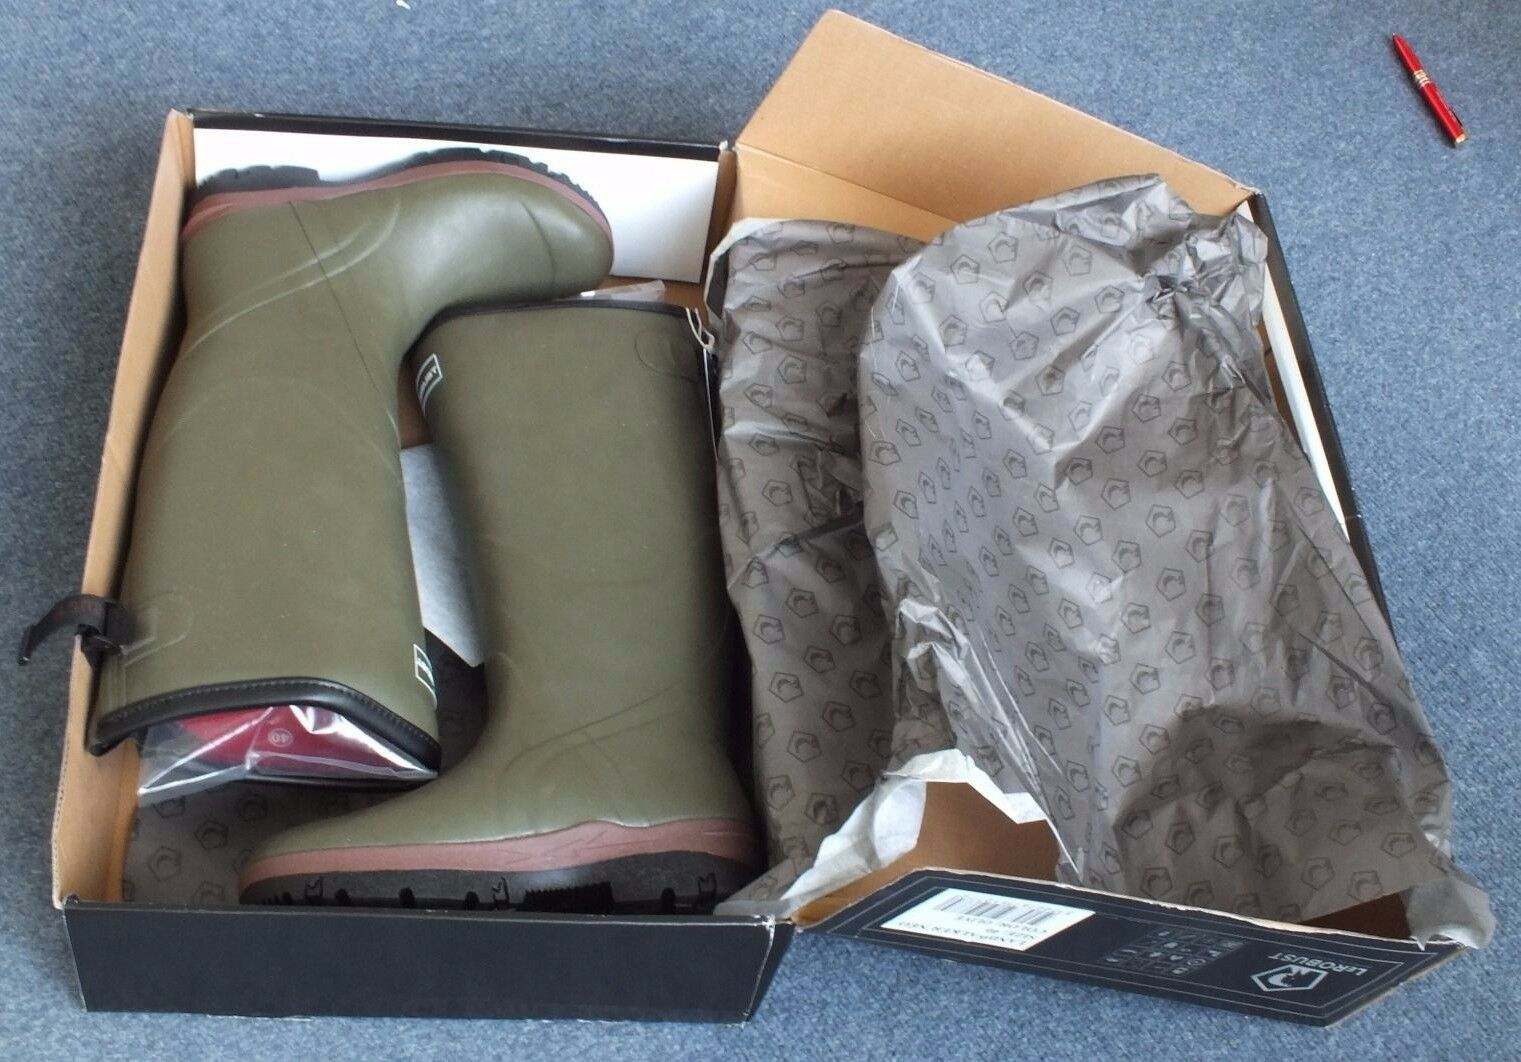 Neoprene 3mm NEO 4 Olive Wellington Boots - Size 11.5 UK (FR 46)